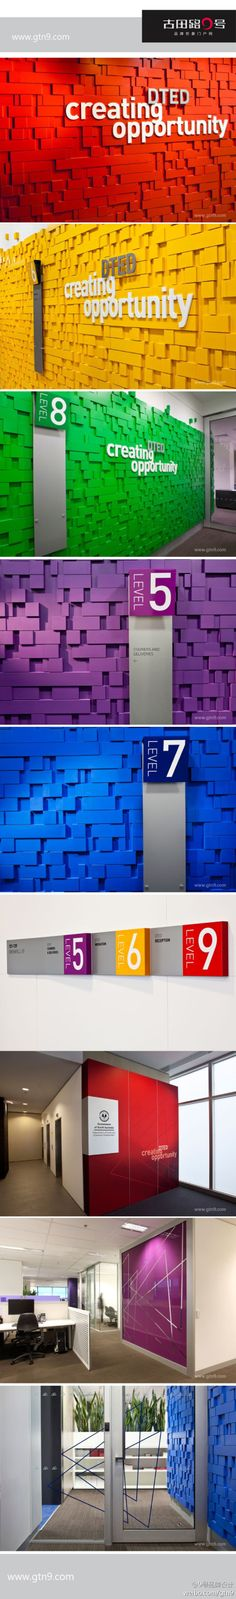 but the idea of color, texture, and signage working together for great wayfinding. Office Signage, Office Branding, Wayfinding Signage, Signage Design, Environmental Graphic Design, Environmental Graphics, Vitrine Design, Design Commercial, Sign System